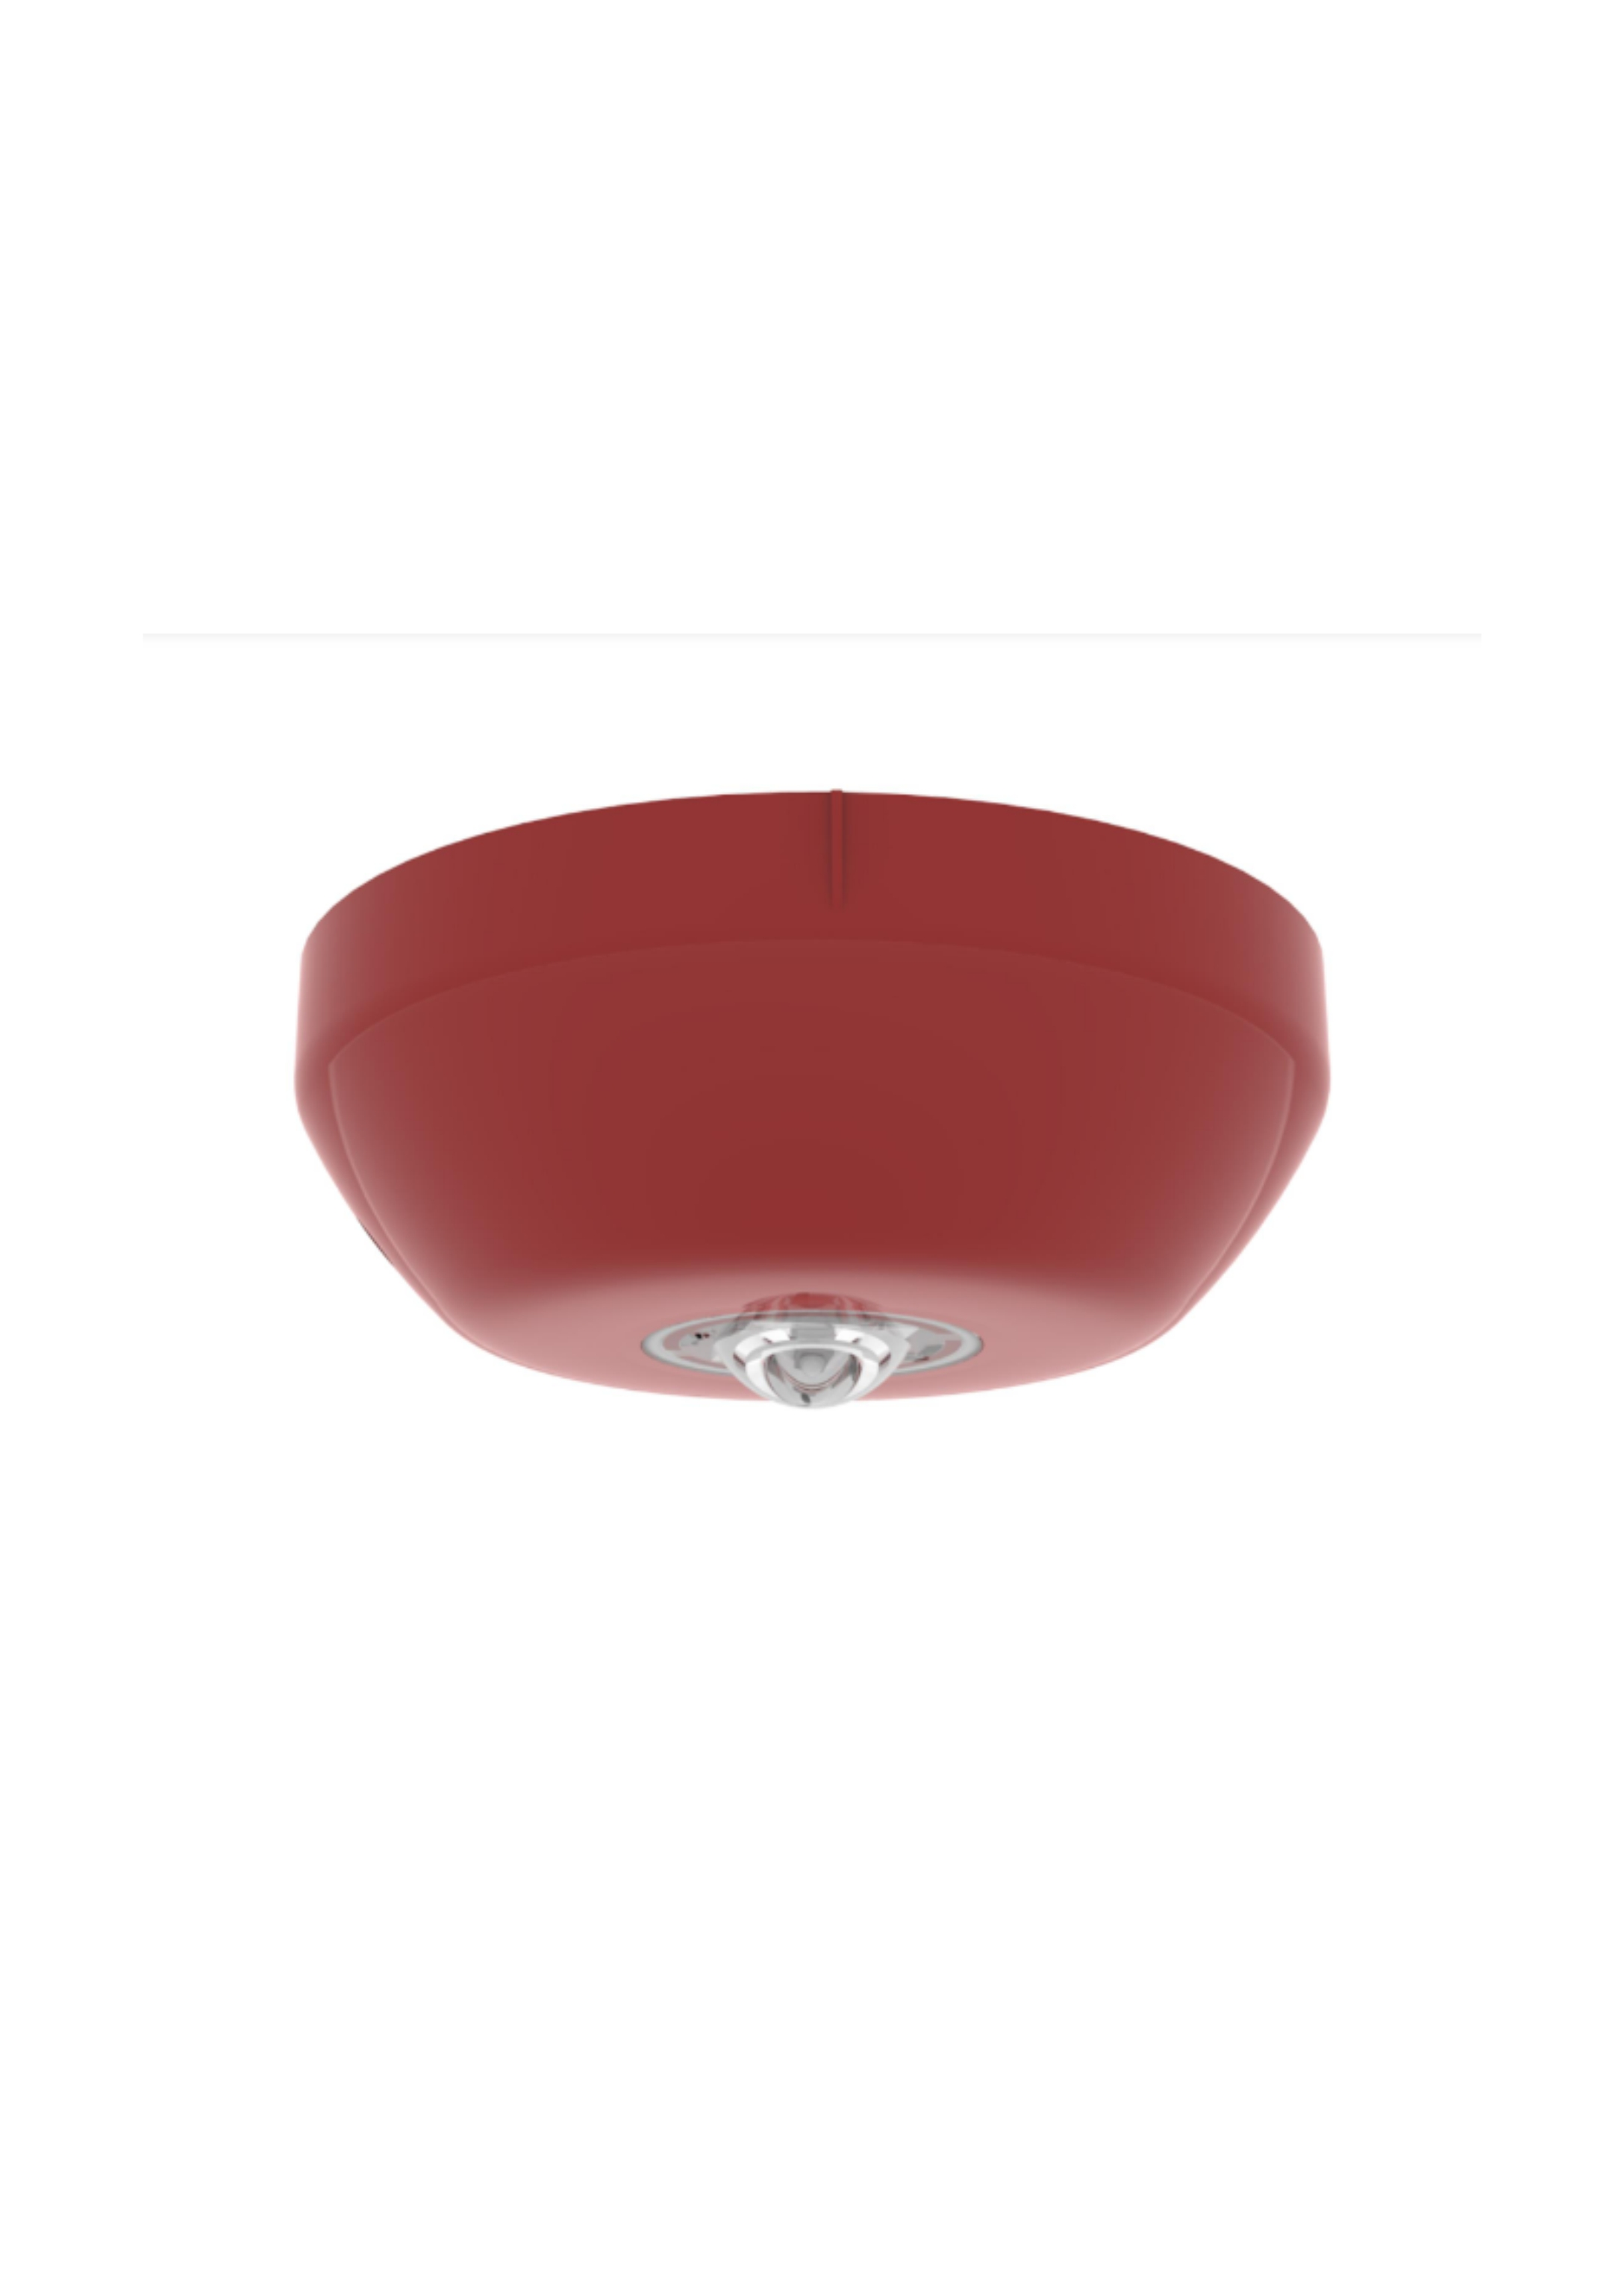 Ceiling Beacon - Red case, white LEDs (7.5m) 14601...